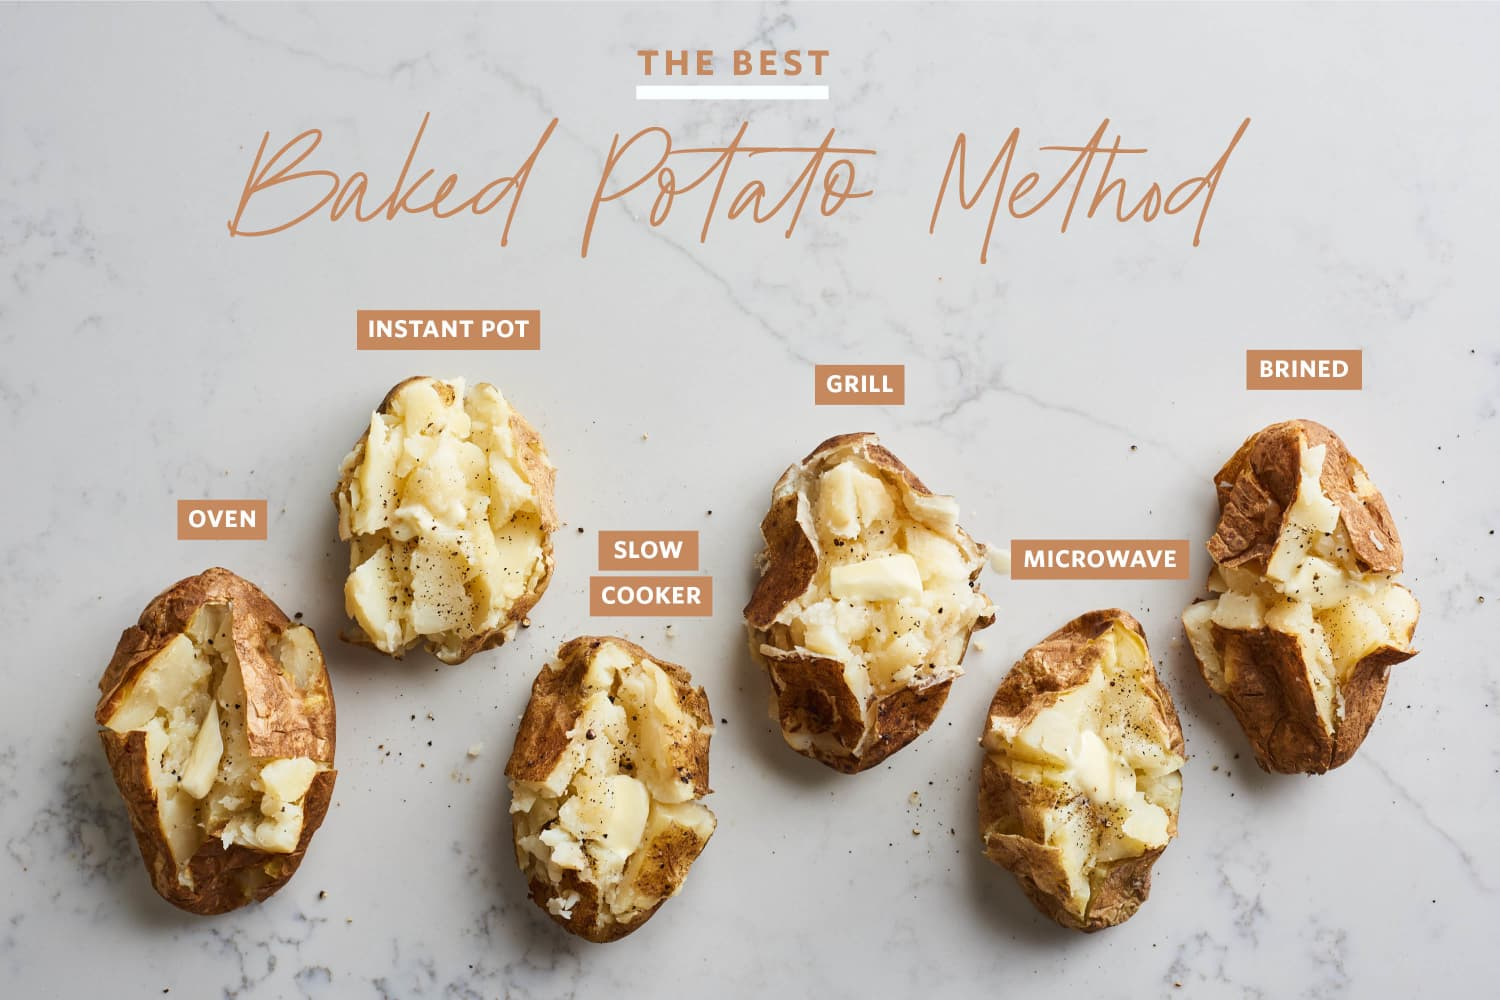 We Tried 6 Methods for Baking a Potato and Found a Clear Winner